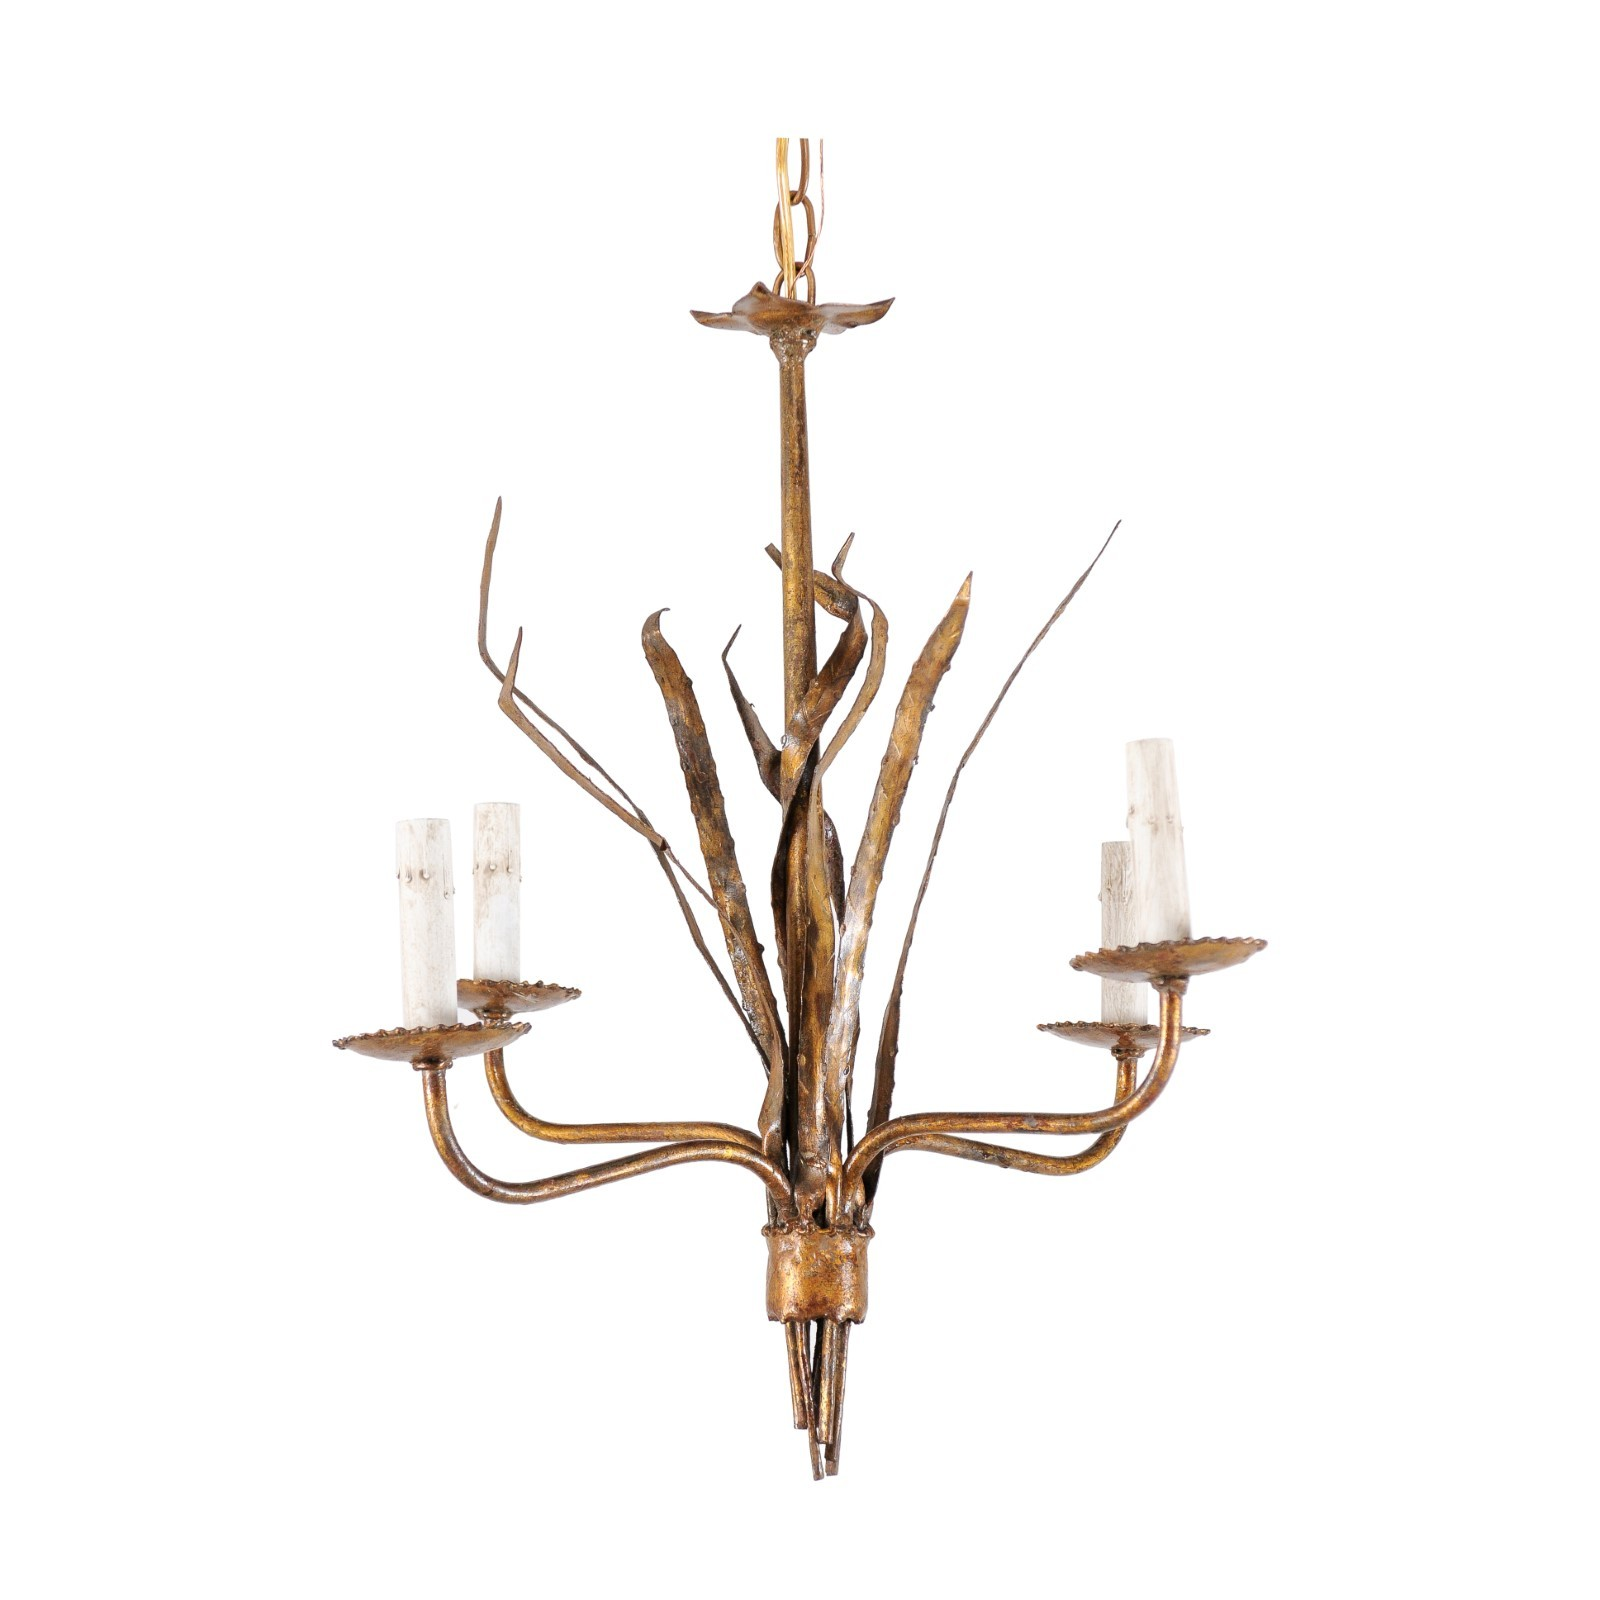 French Antiqued-Gold Tone Hanging Light